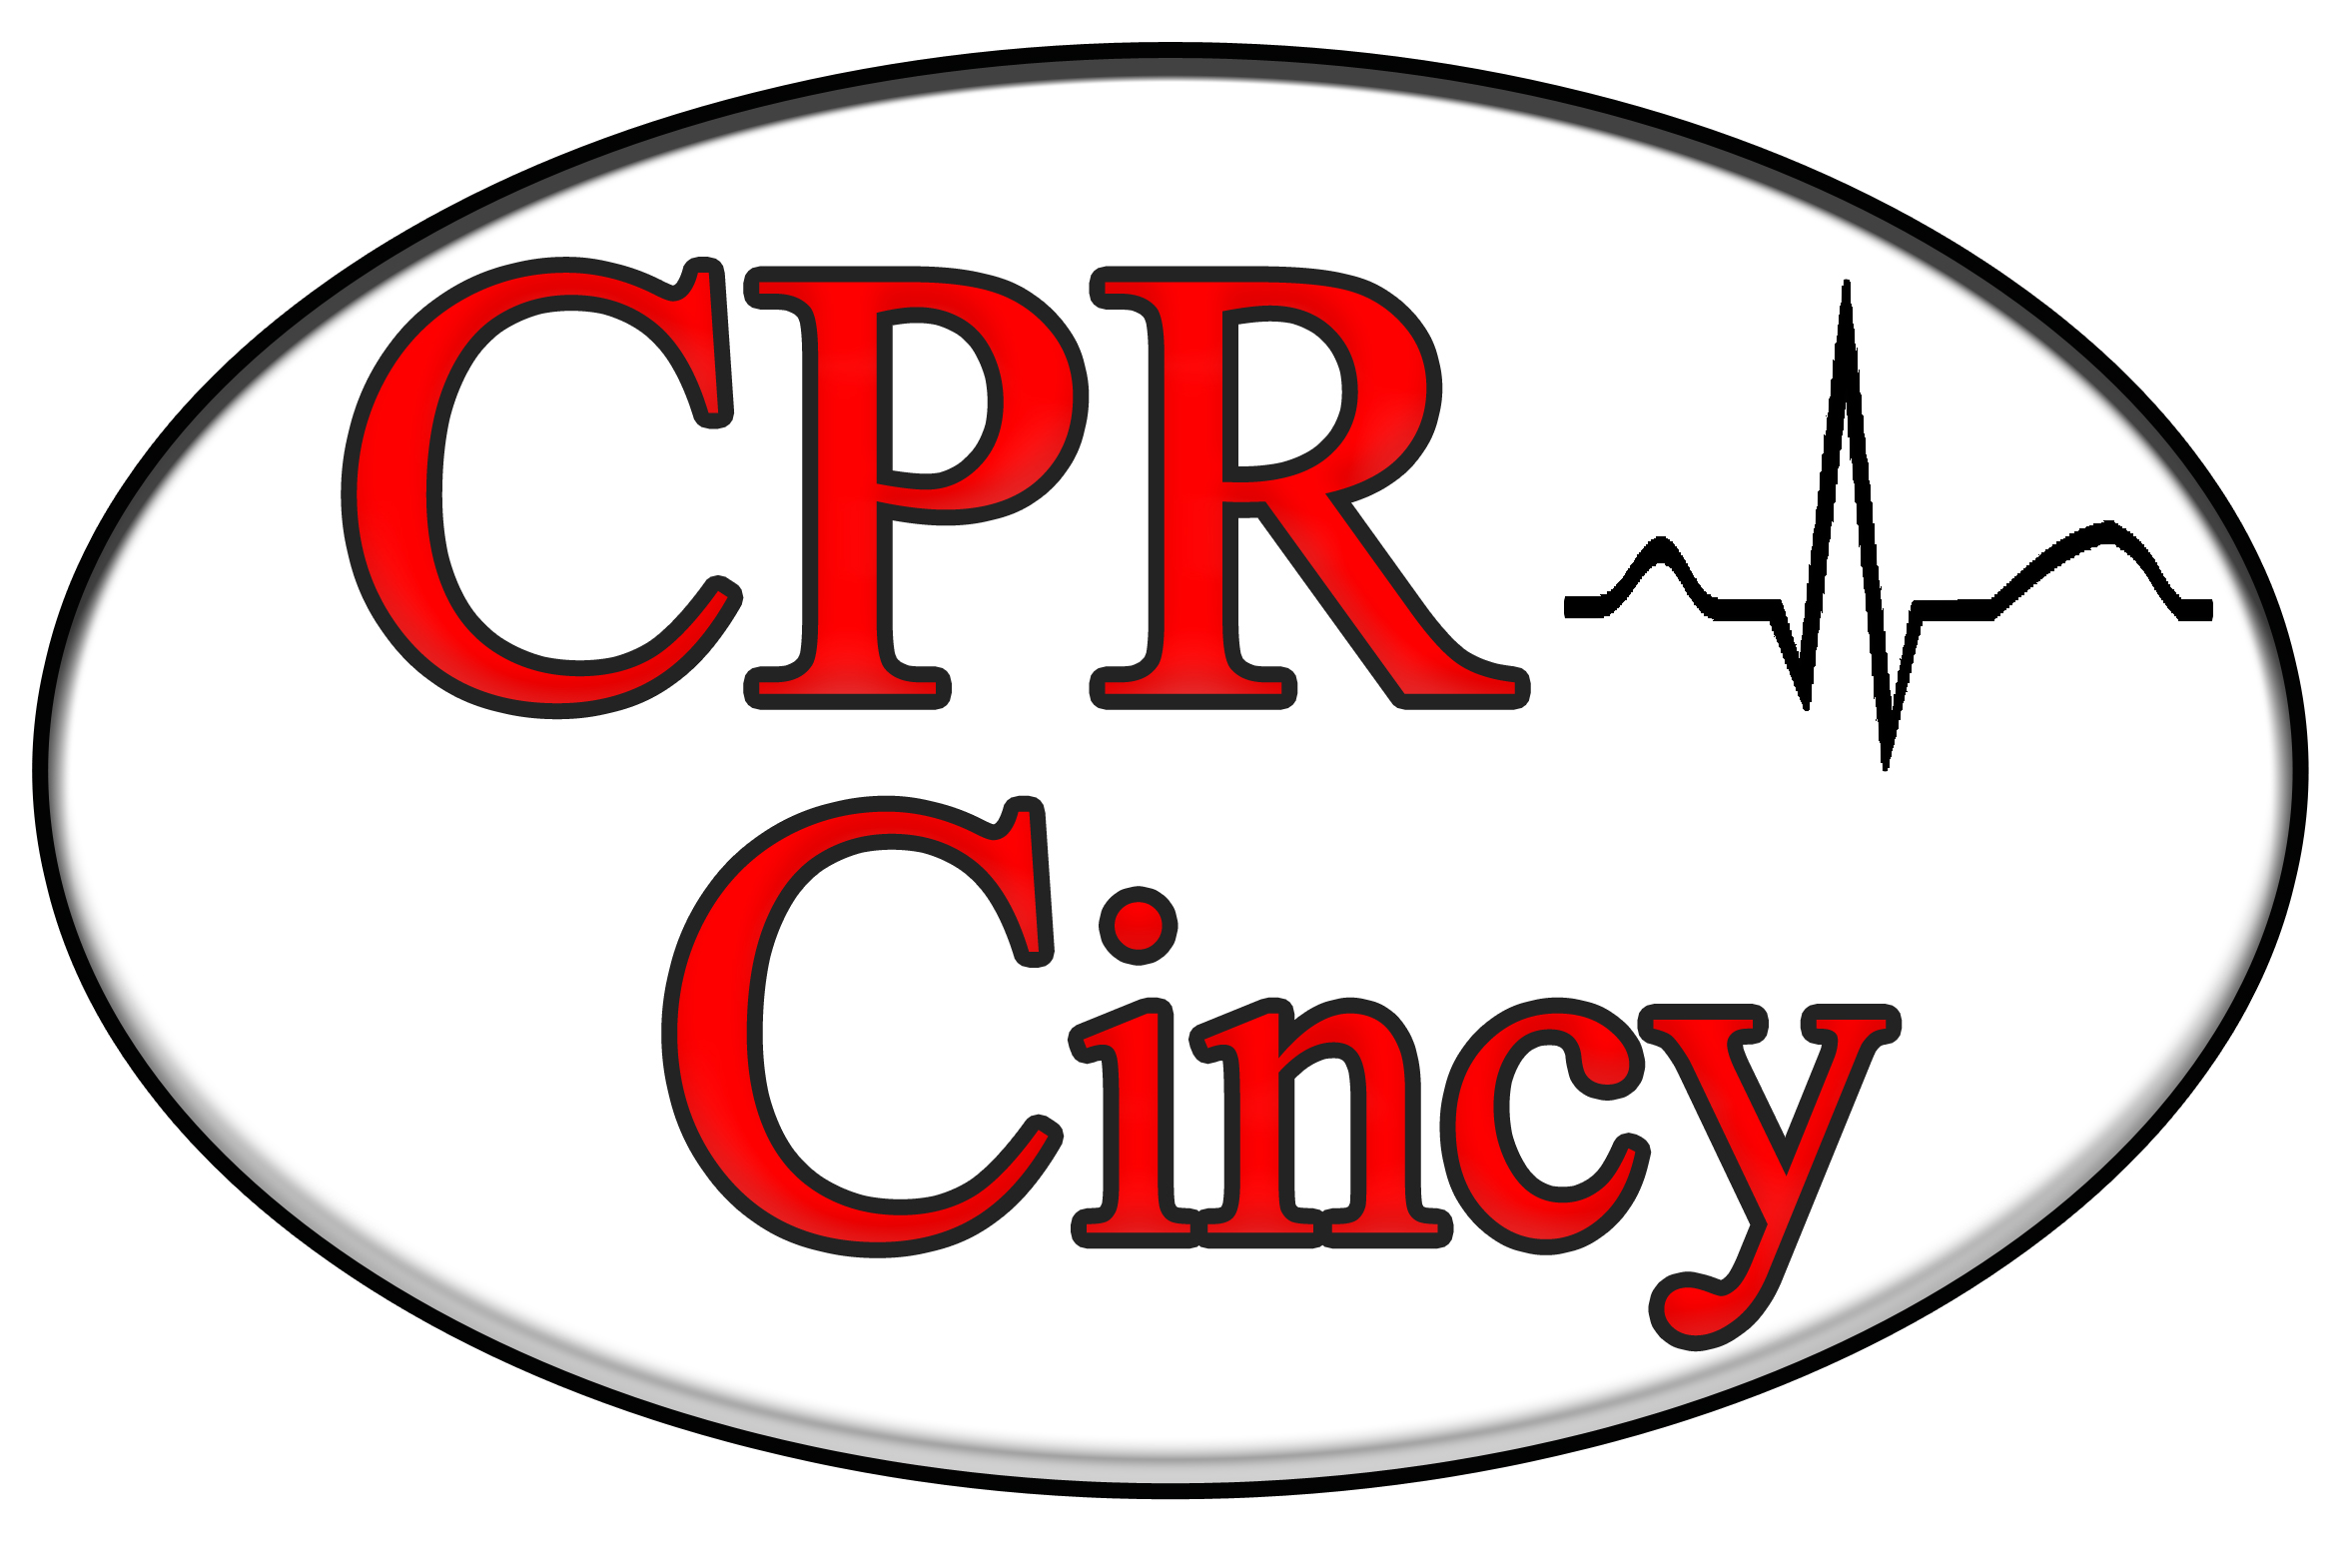 About us cpr cincinnati 513 828 3488 cpr cincinnati is an american heart association training site classes are held in a conveniently located local cincinnati area see location 1betcityfo Gallery